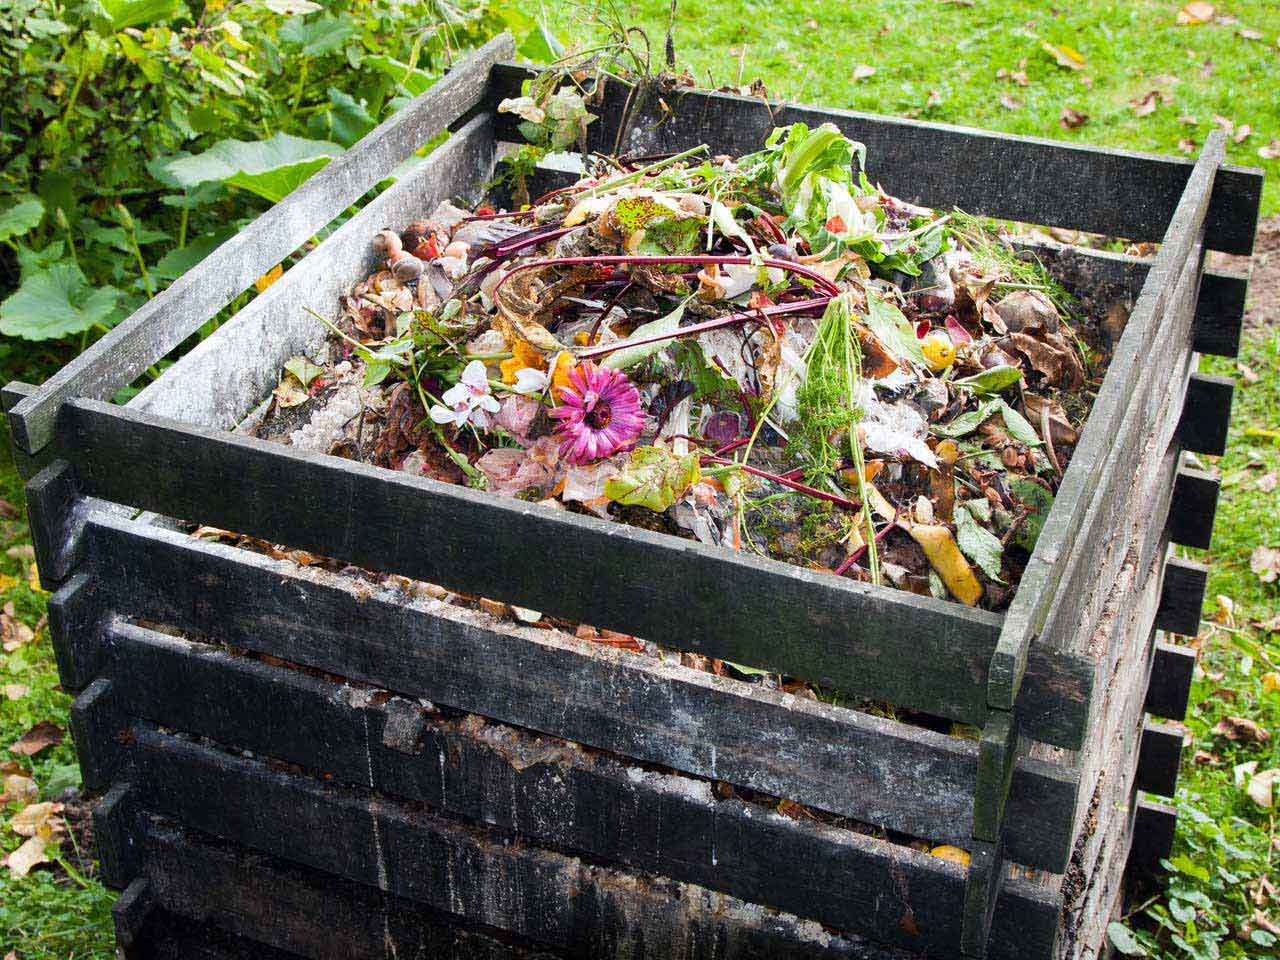 GOOD OLD FASHIONED COMPOST HEAP